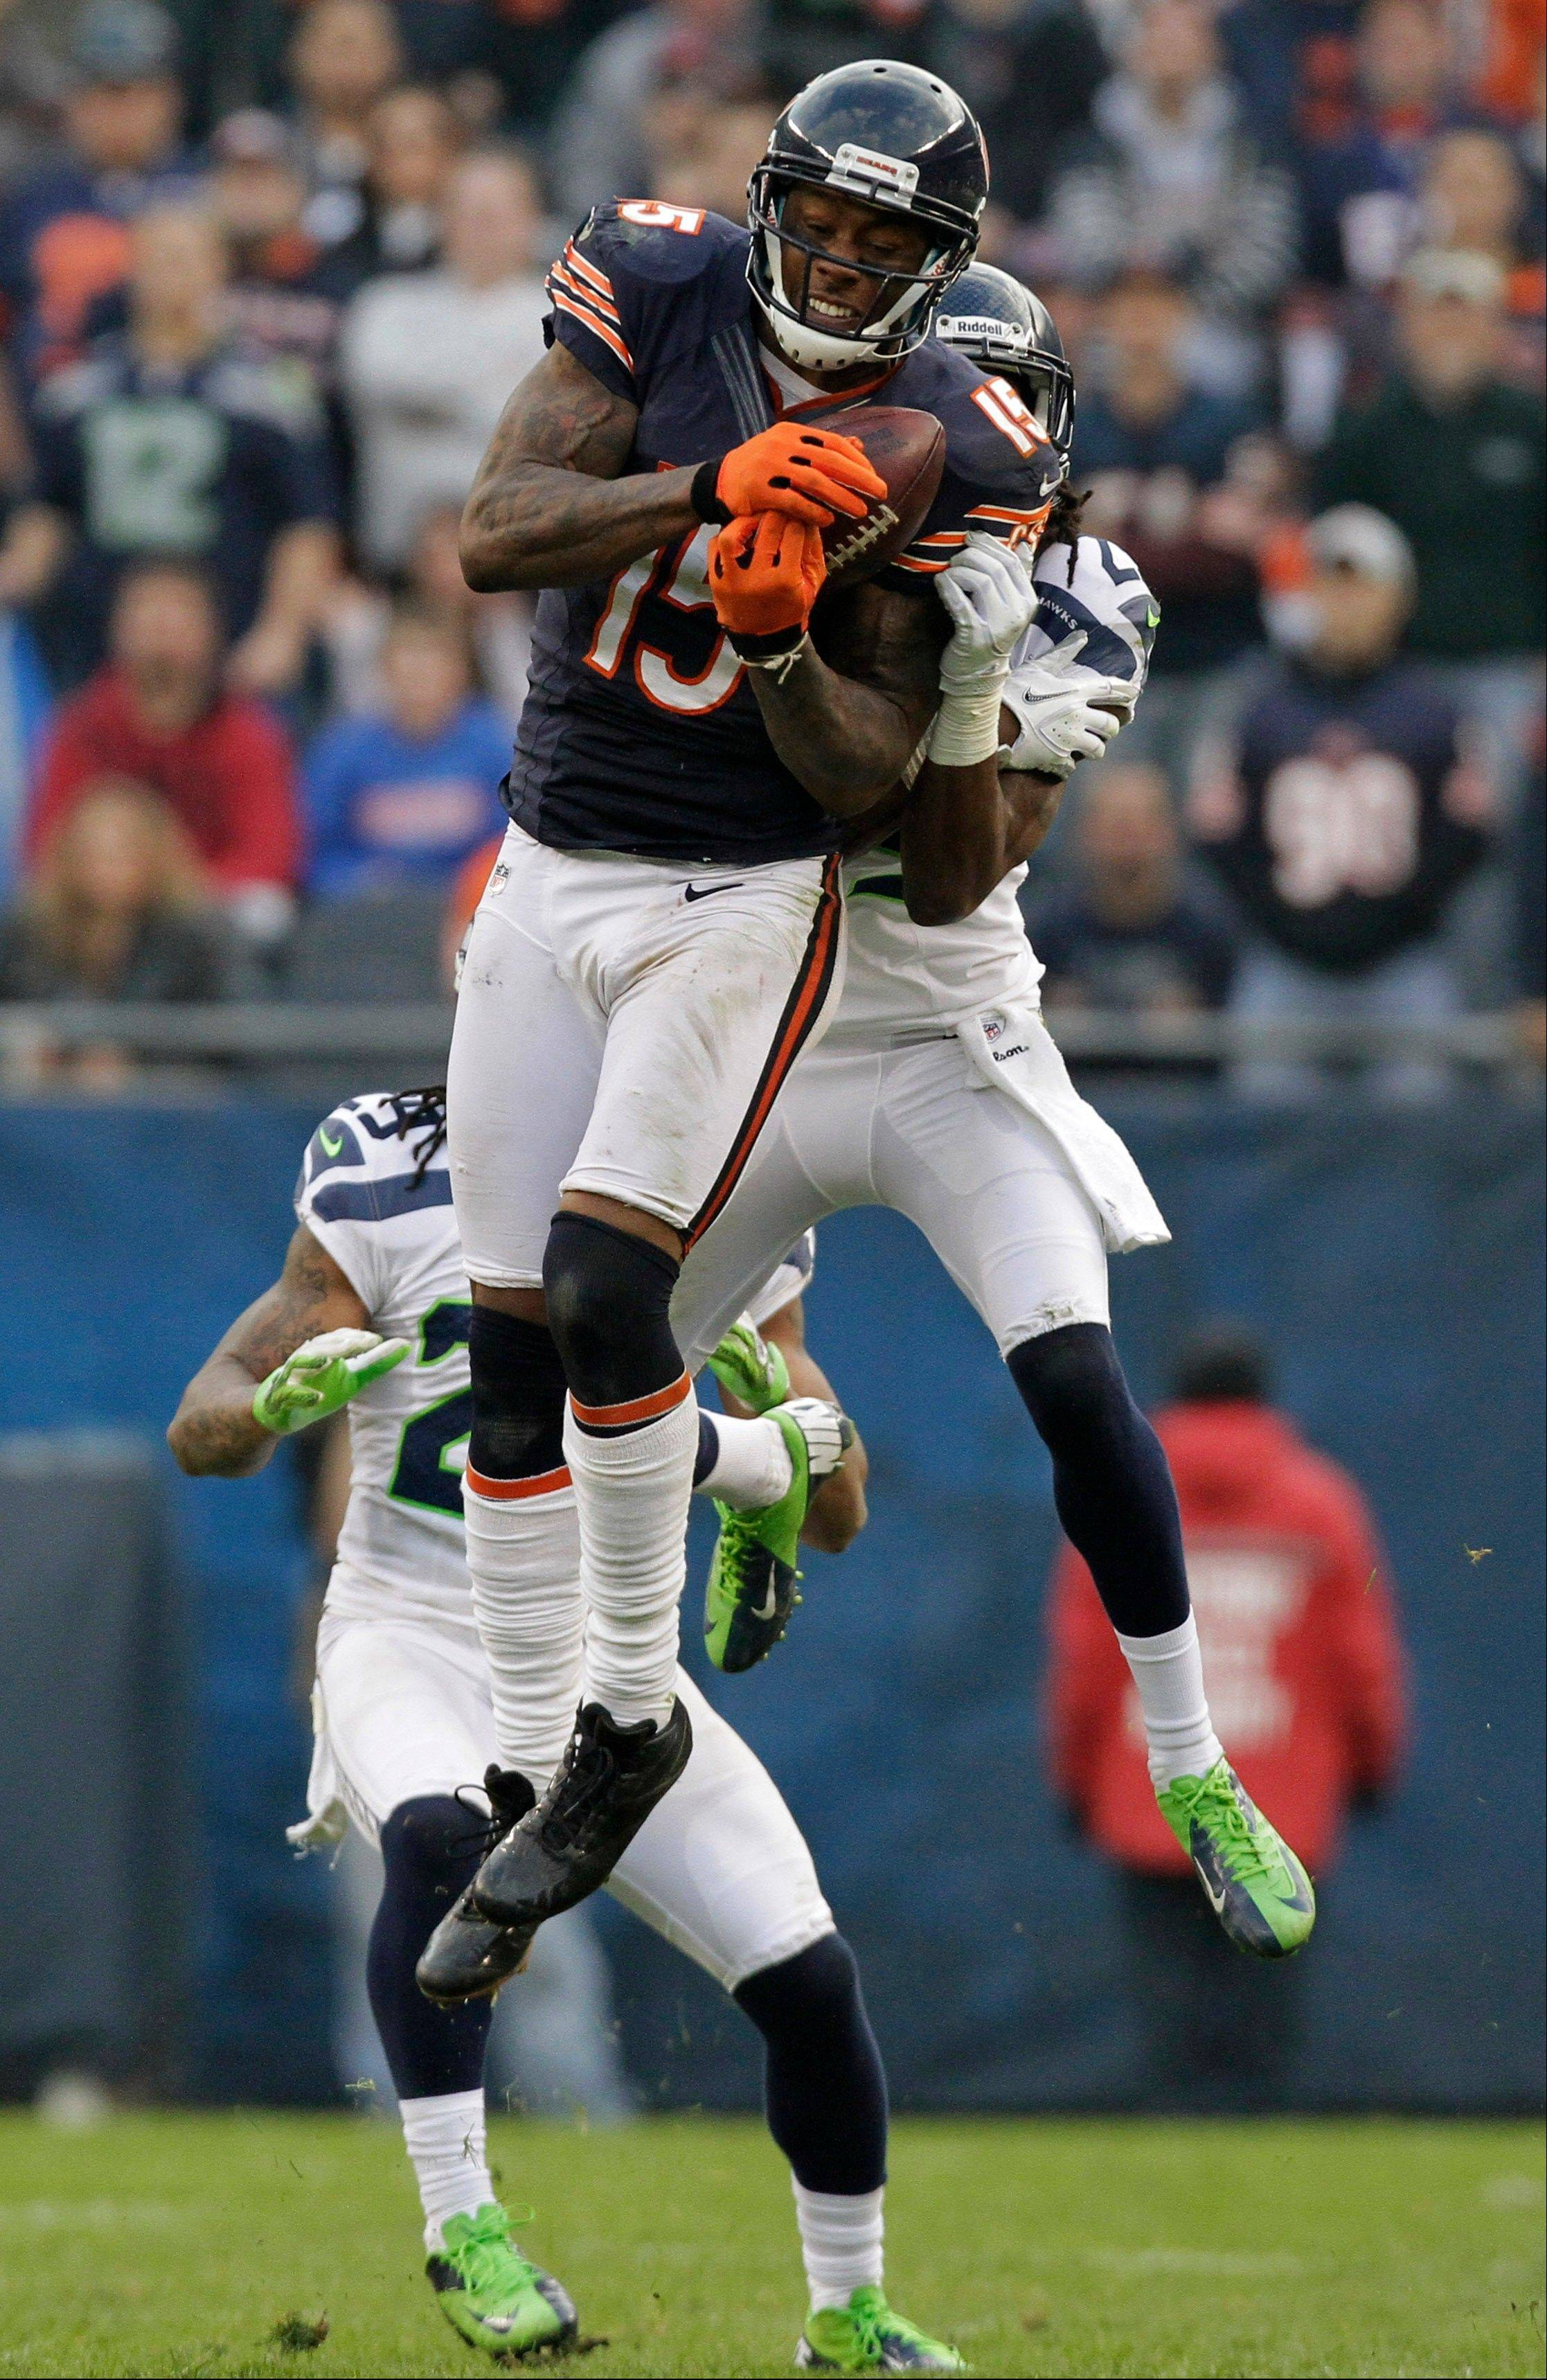 Bears wide receiver Brandon Marshall, here making a catch against Seattle Seahawks cornerback Richard Sherman, says Sunday�s game against the Green Bay Packers is personal.